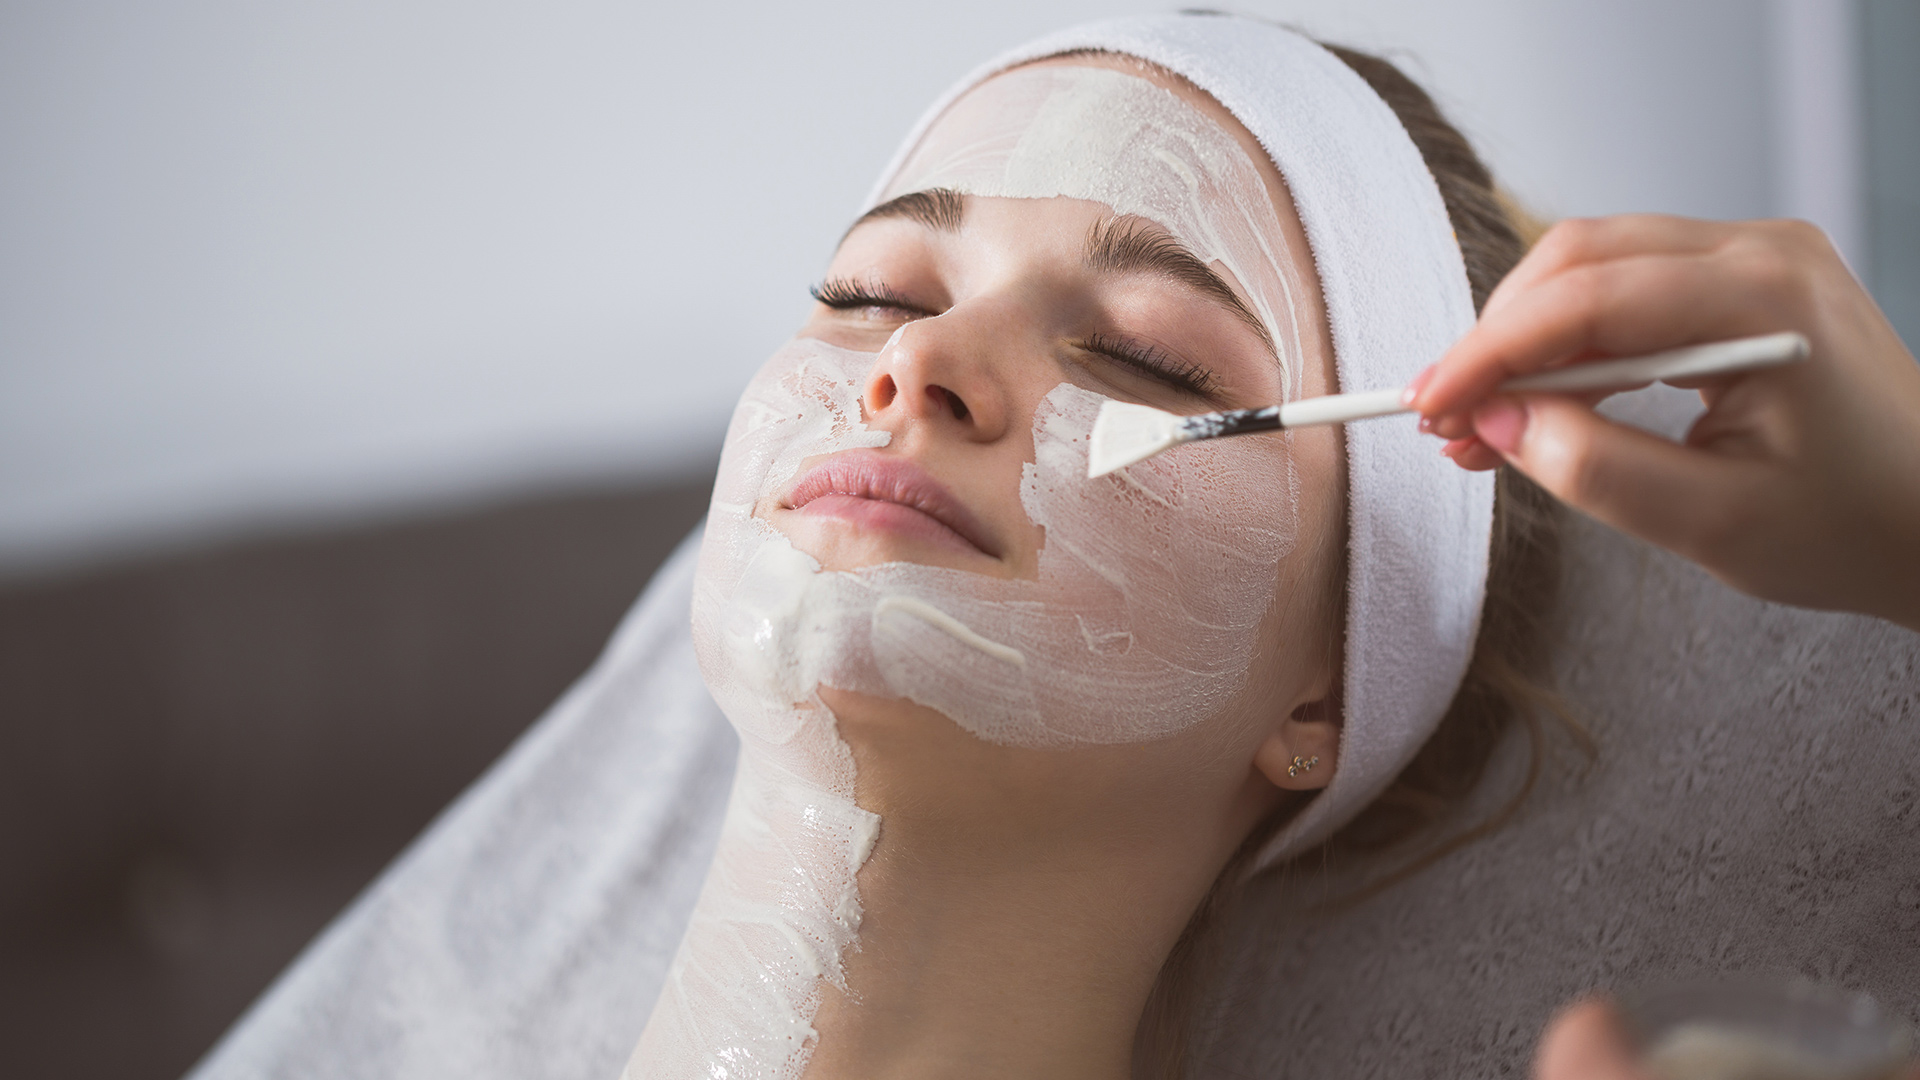 Facial care based on your skin type and seasons